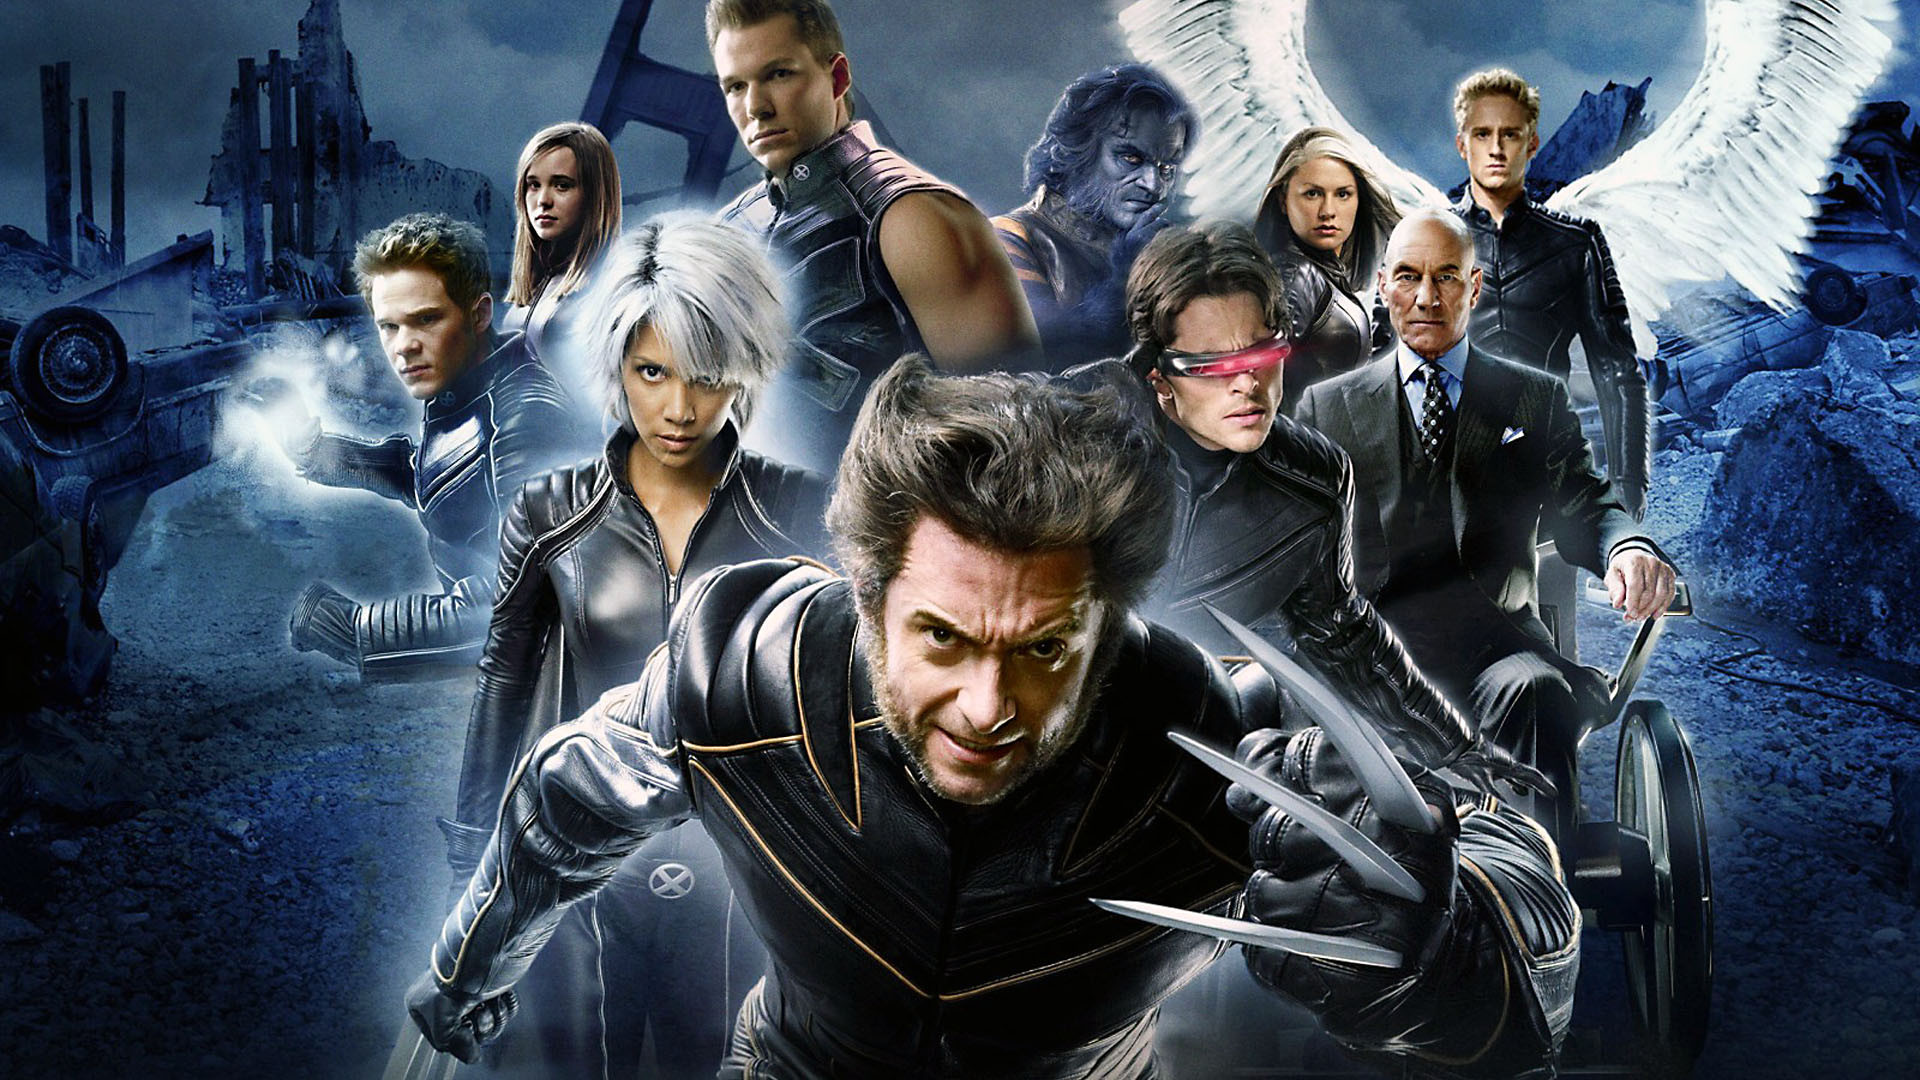 https://kokkieh.files.wordpress.com/2013/07/x-men-days-of-future-past-x-men-days-of-future-past.jpg